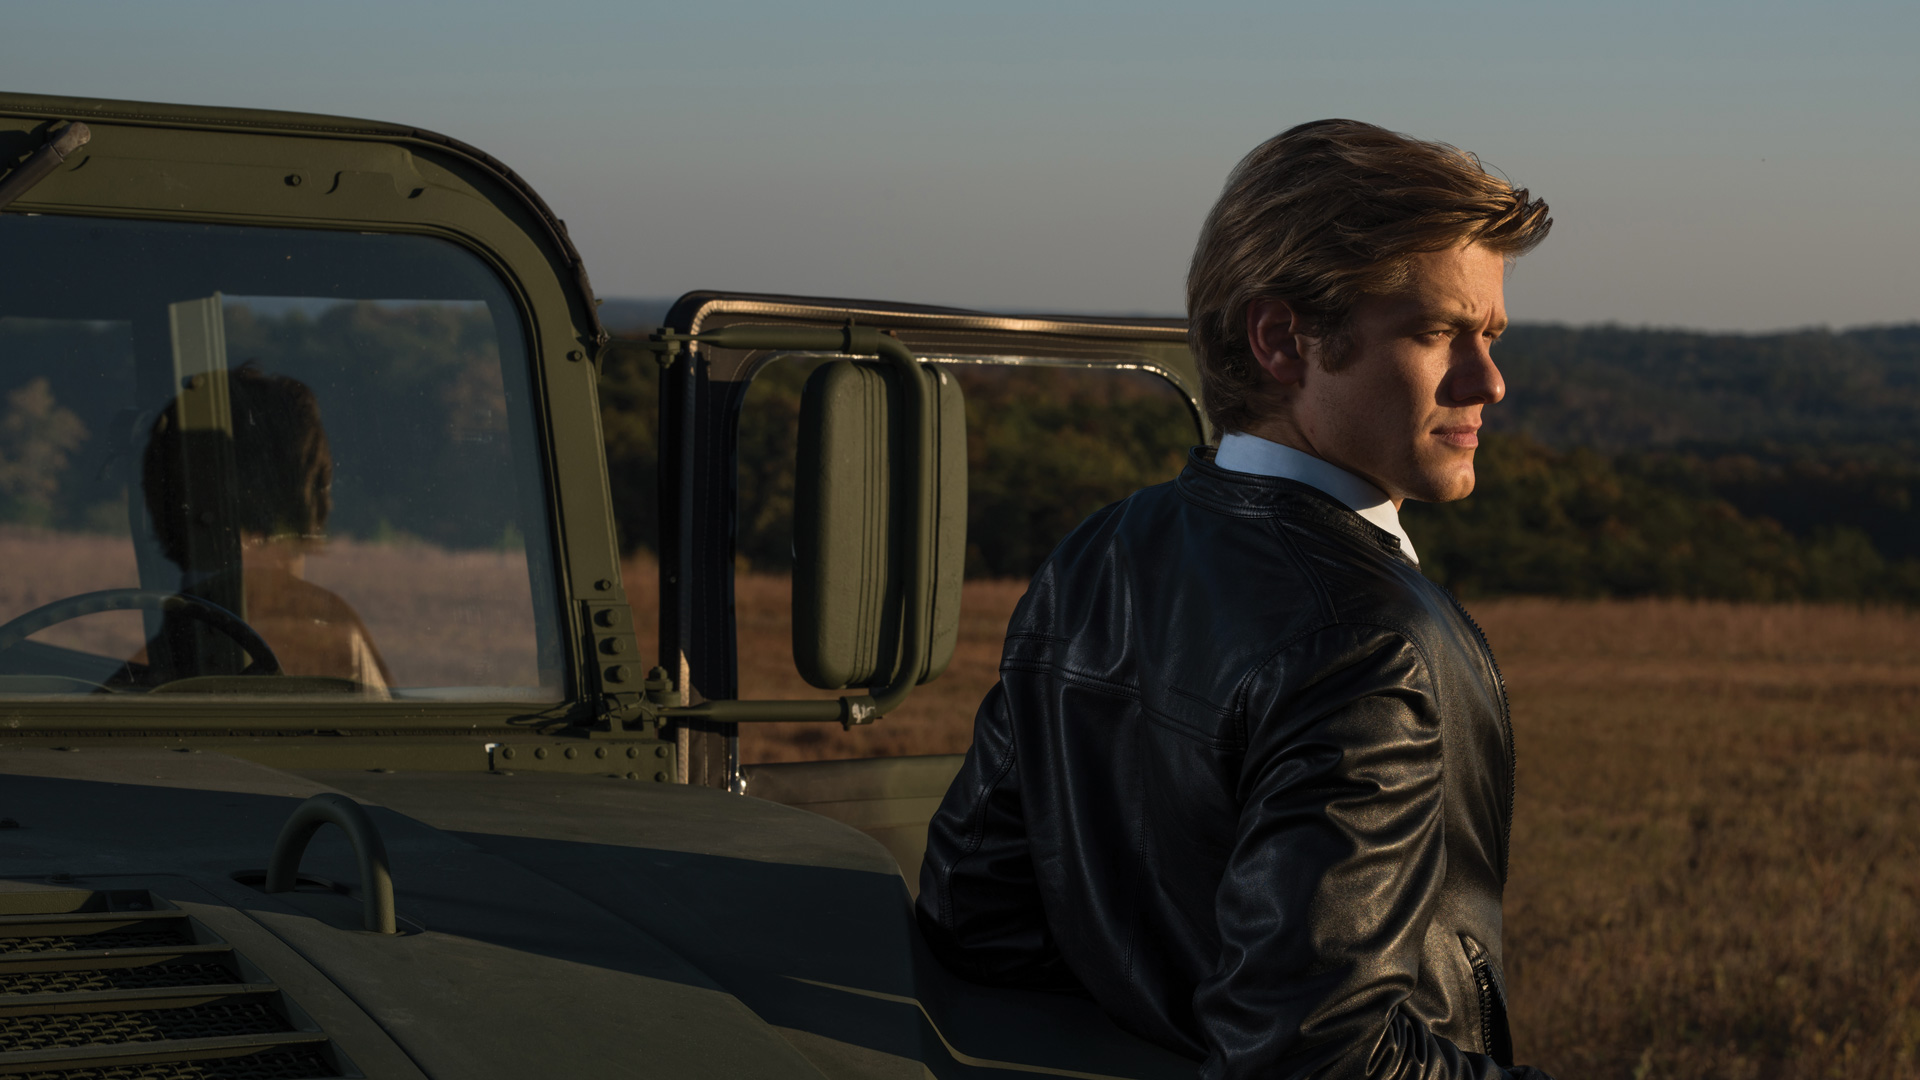 High-octane thrills with MacGyver